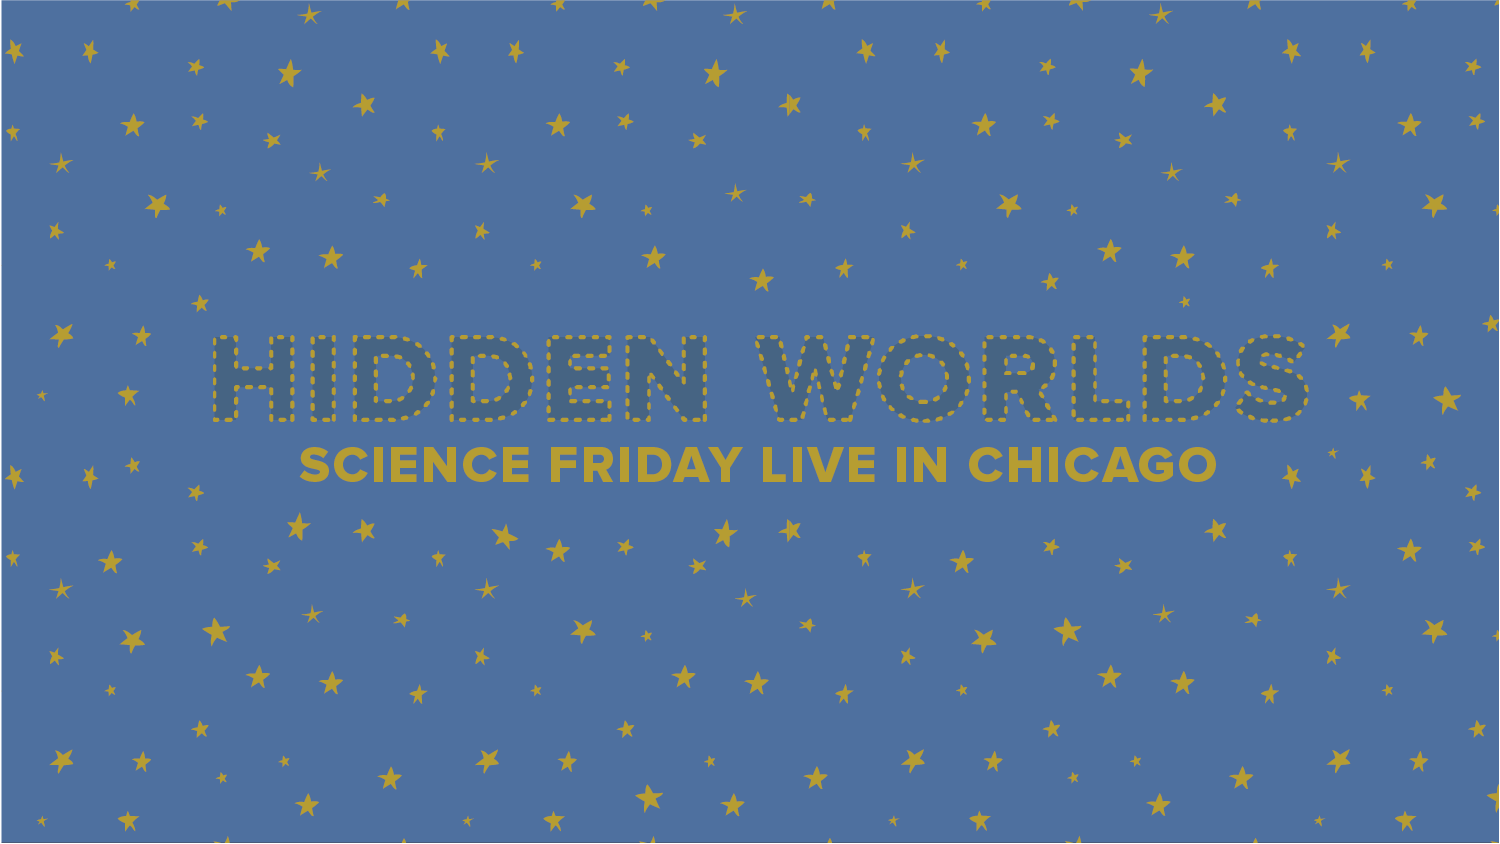 Hidden Worlds: Science Friday Live In Chicago logo among stars